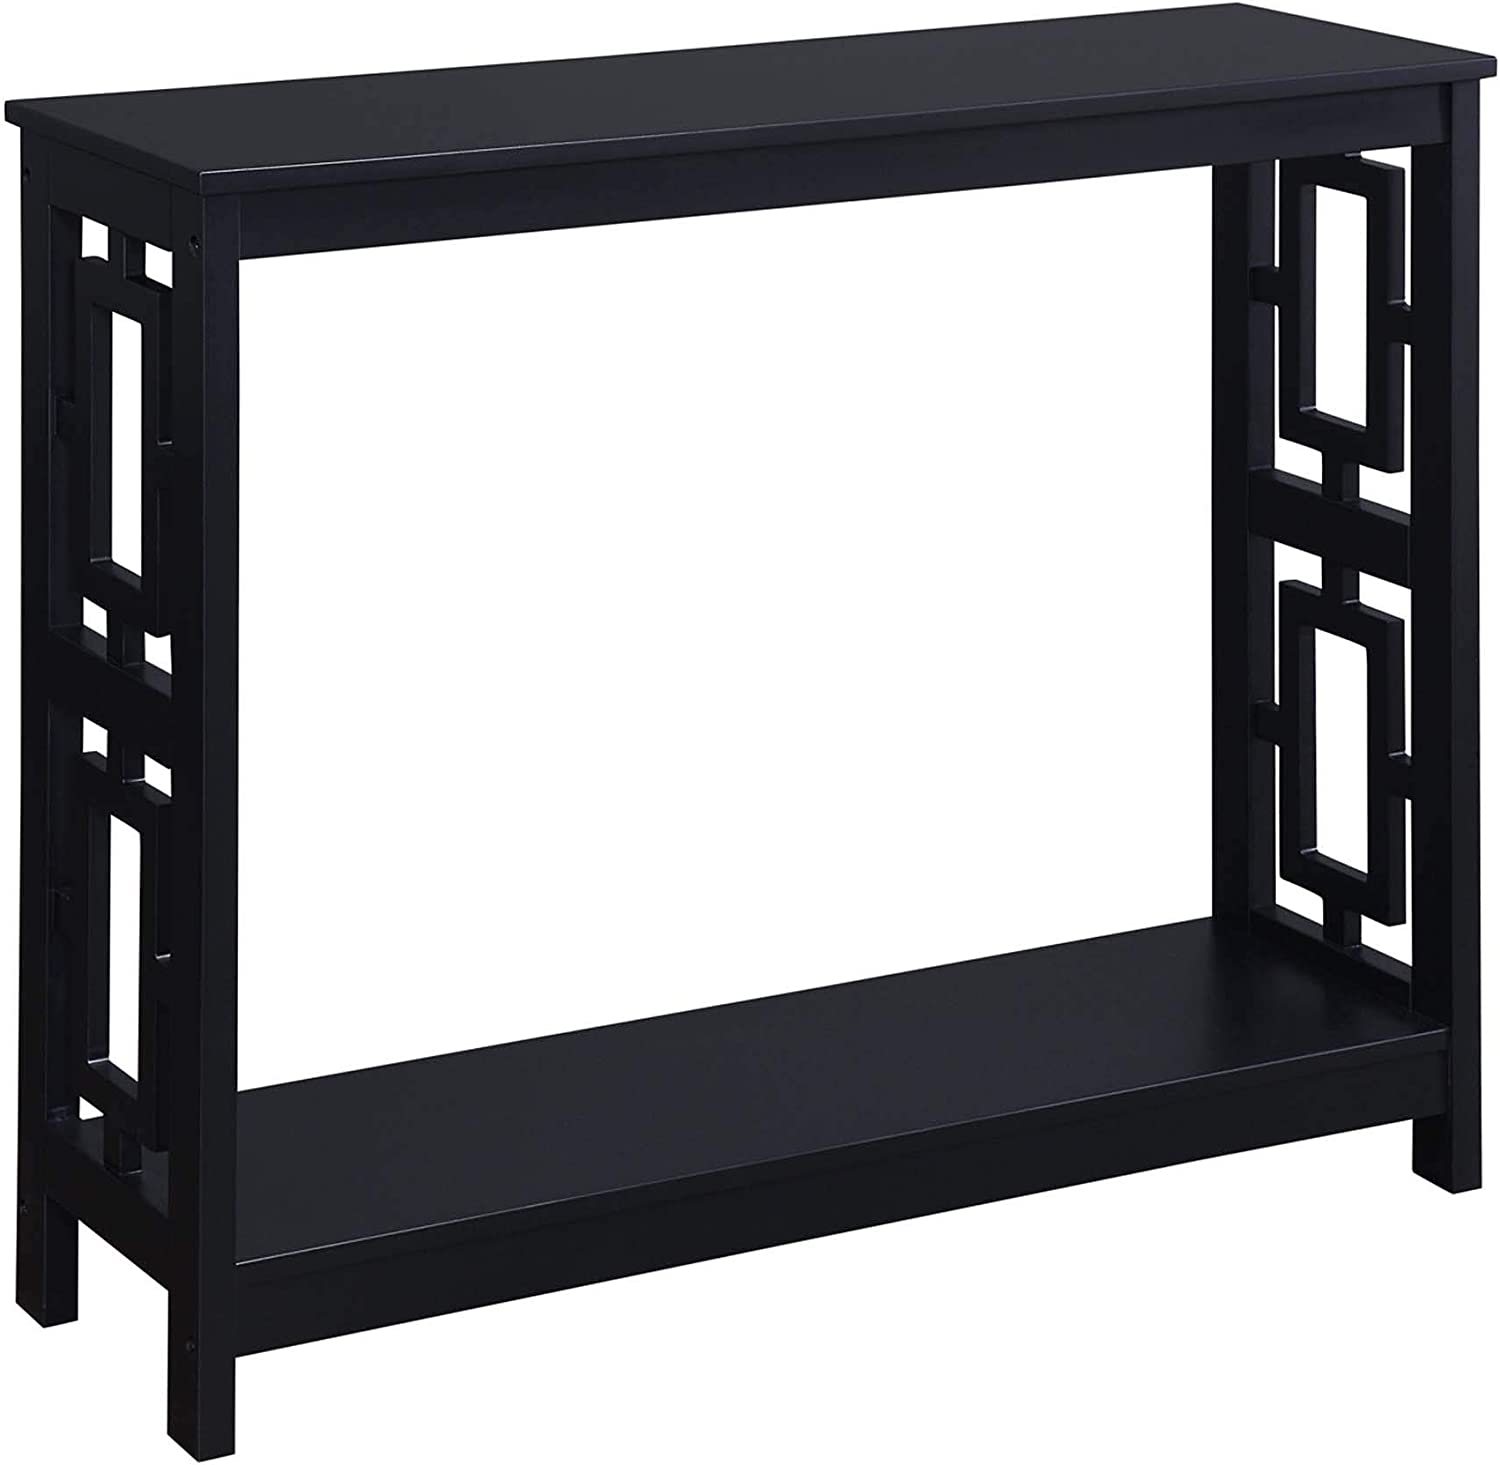 Convenience Concepts Town Square Console Table, Black